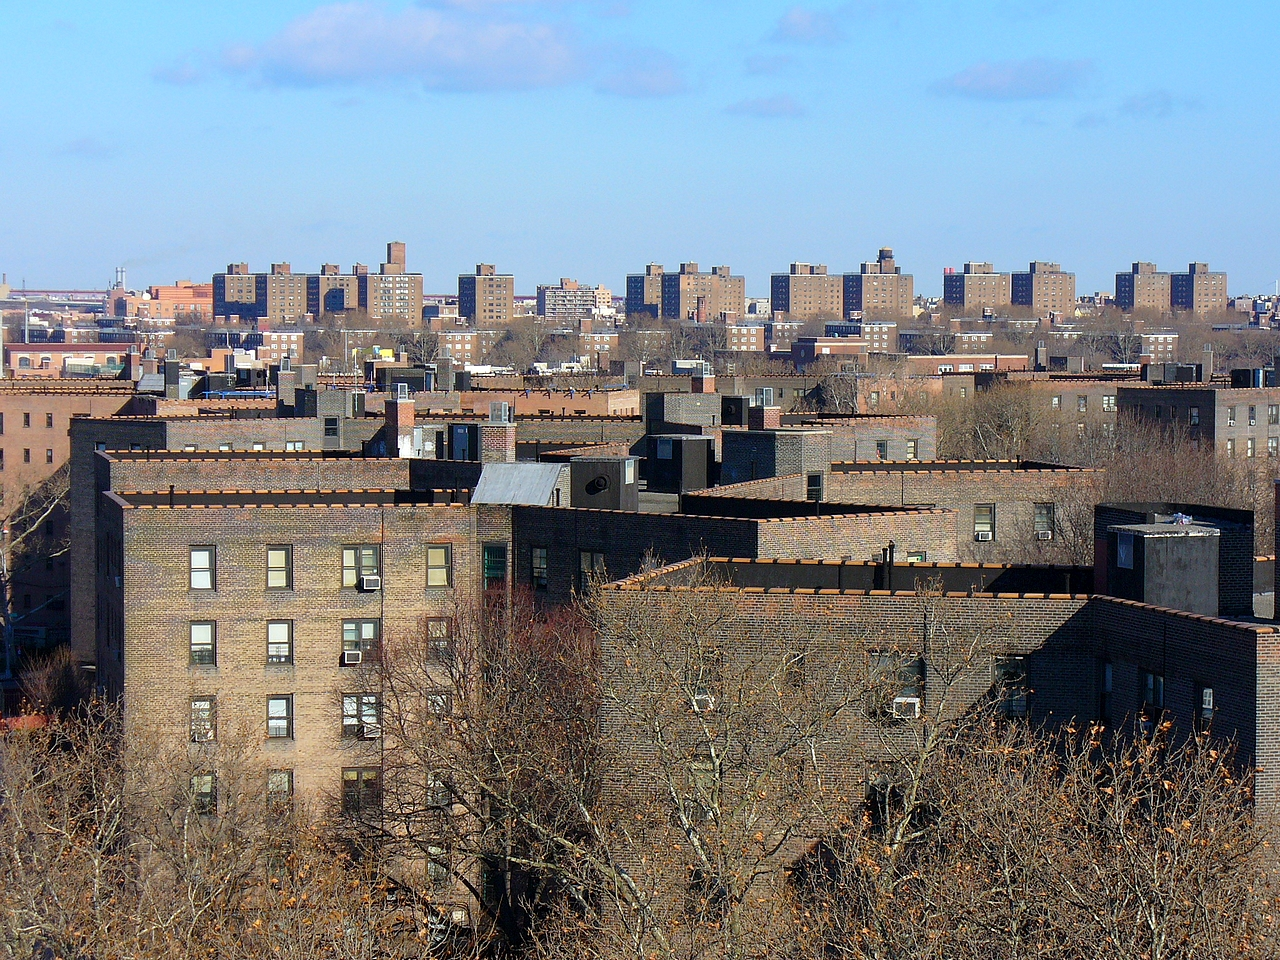 The Queensbridge Houses in Long Island City comprise the largest NYCHA development in New York City. Photo by Metrocentric via Wikimedia Commons